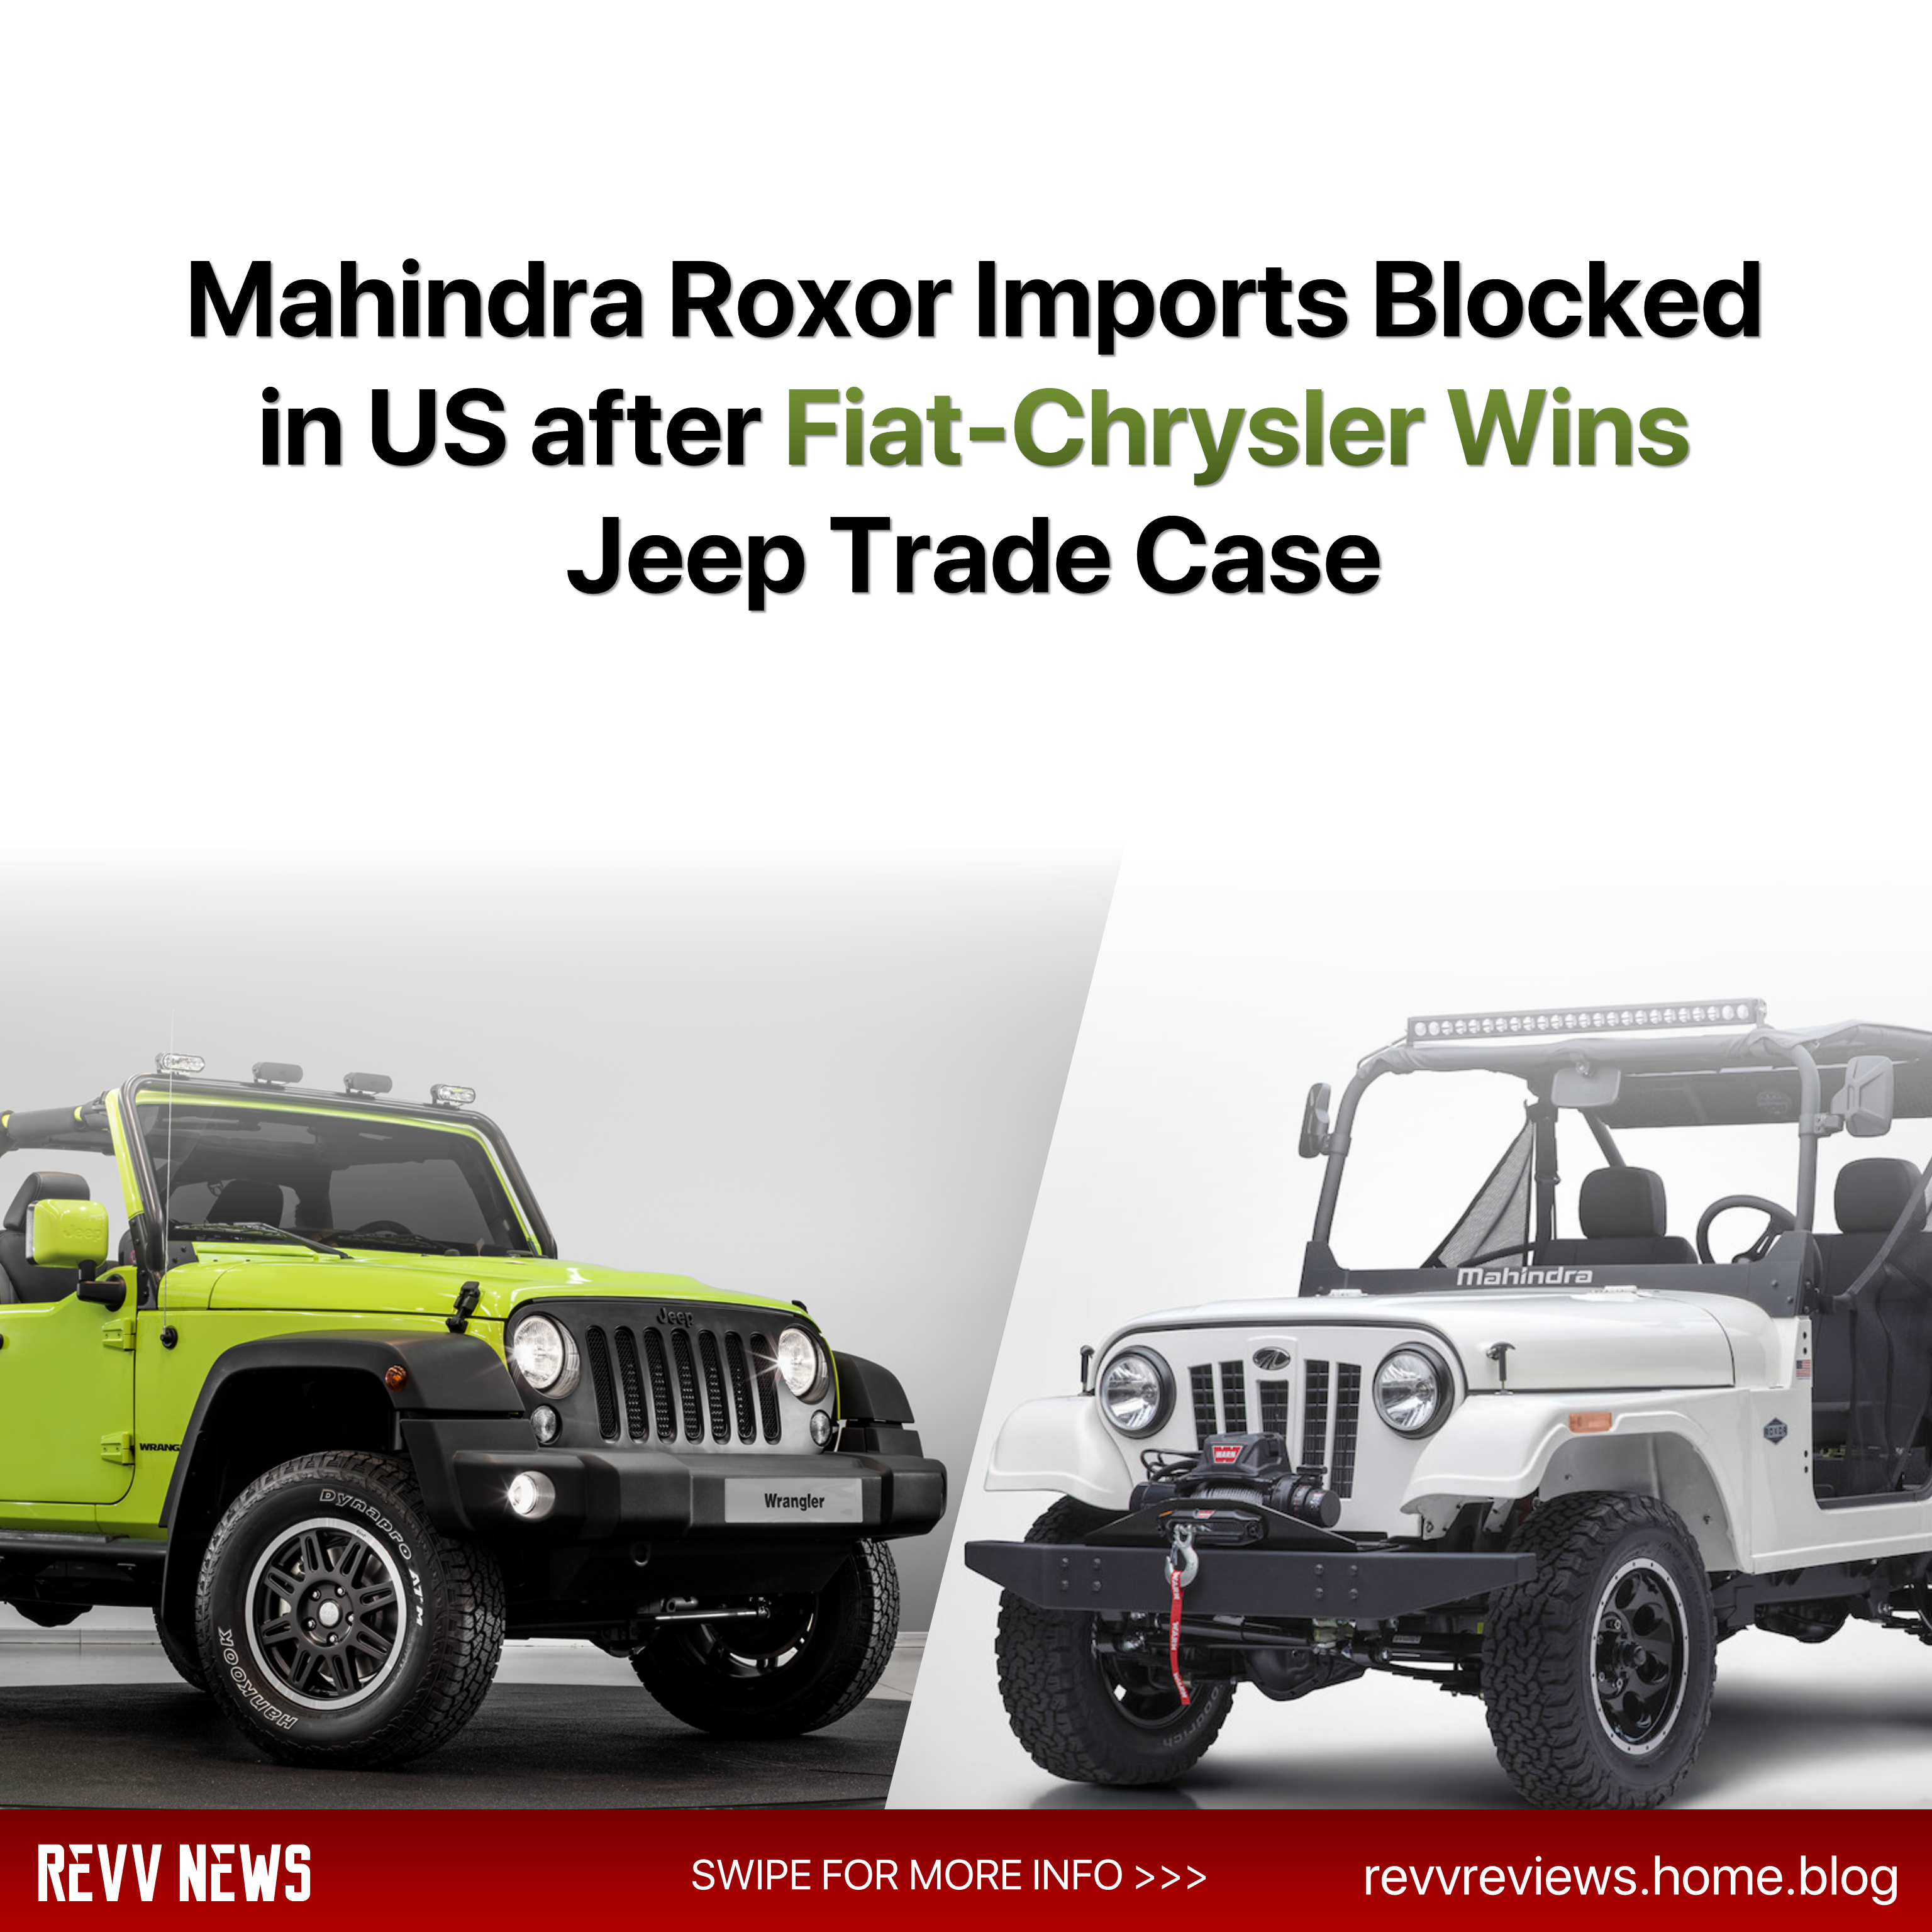 Mahindra Roxor Imports Blocked In Us After Fiat Chrysler Wins Jeep Trade Case Follow Us On Instagram Revv News For Daily Automo Fiat Mahindra Jeep Chrysler